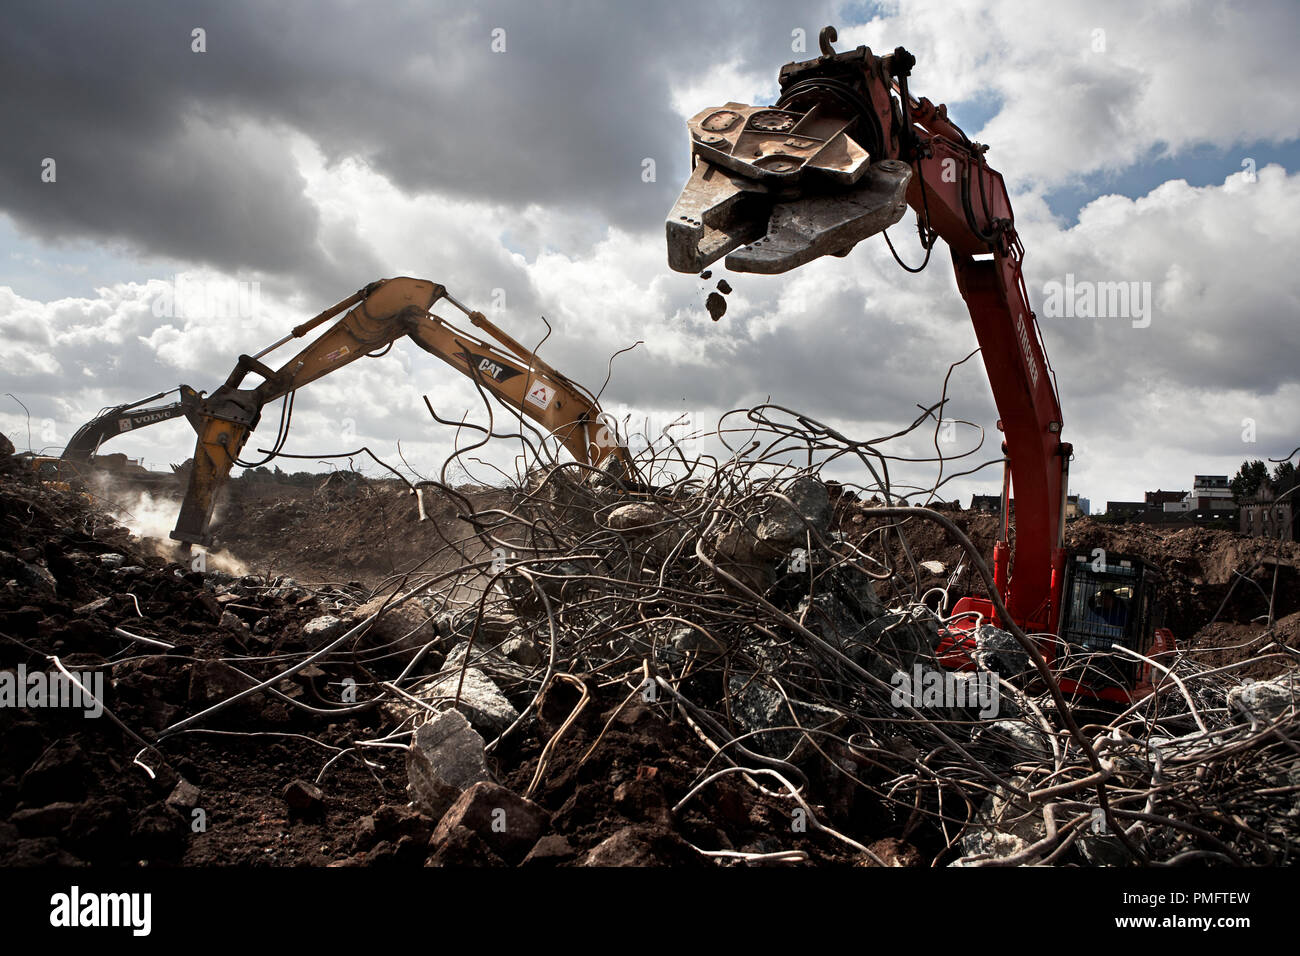 Like Dinosauria, the excavators work with special grippers through huge tents made of steel wires, which were collected during the construction work on the grounds of the former Phoenixstahlwerk in Dortmund Hoerde. Where in 2003 Chinese workers dismantled a complete steel and rolling mill at record speed and rebuilt it in China. - Stock Image